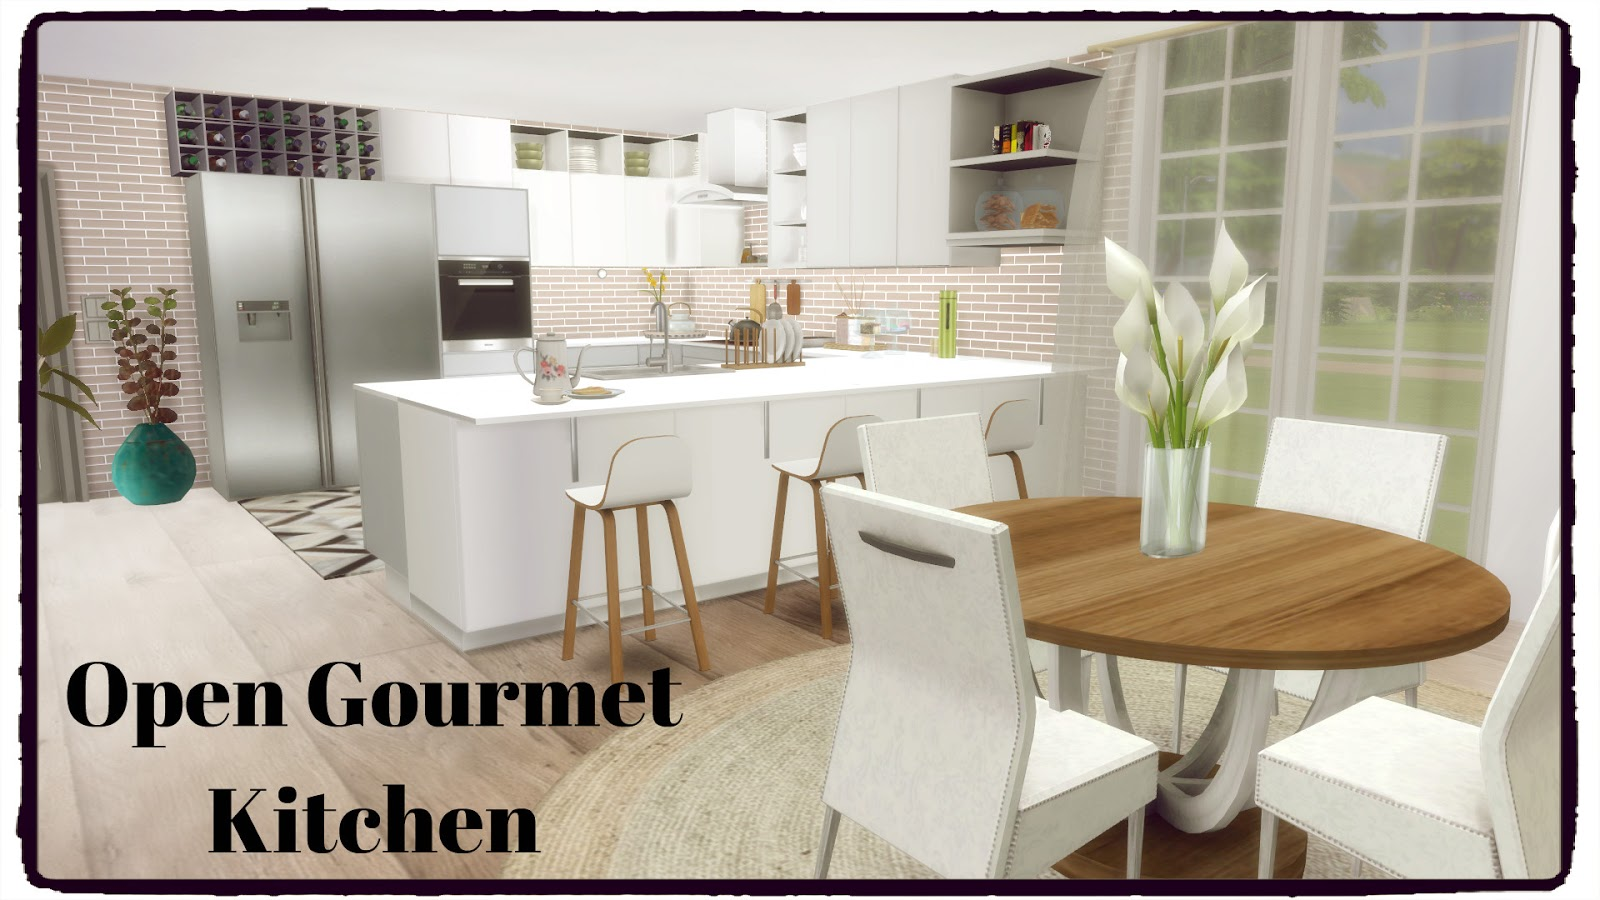 Gourmet Kitchen Sims 4 Open Gourmet Kitchen Dinha